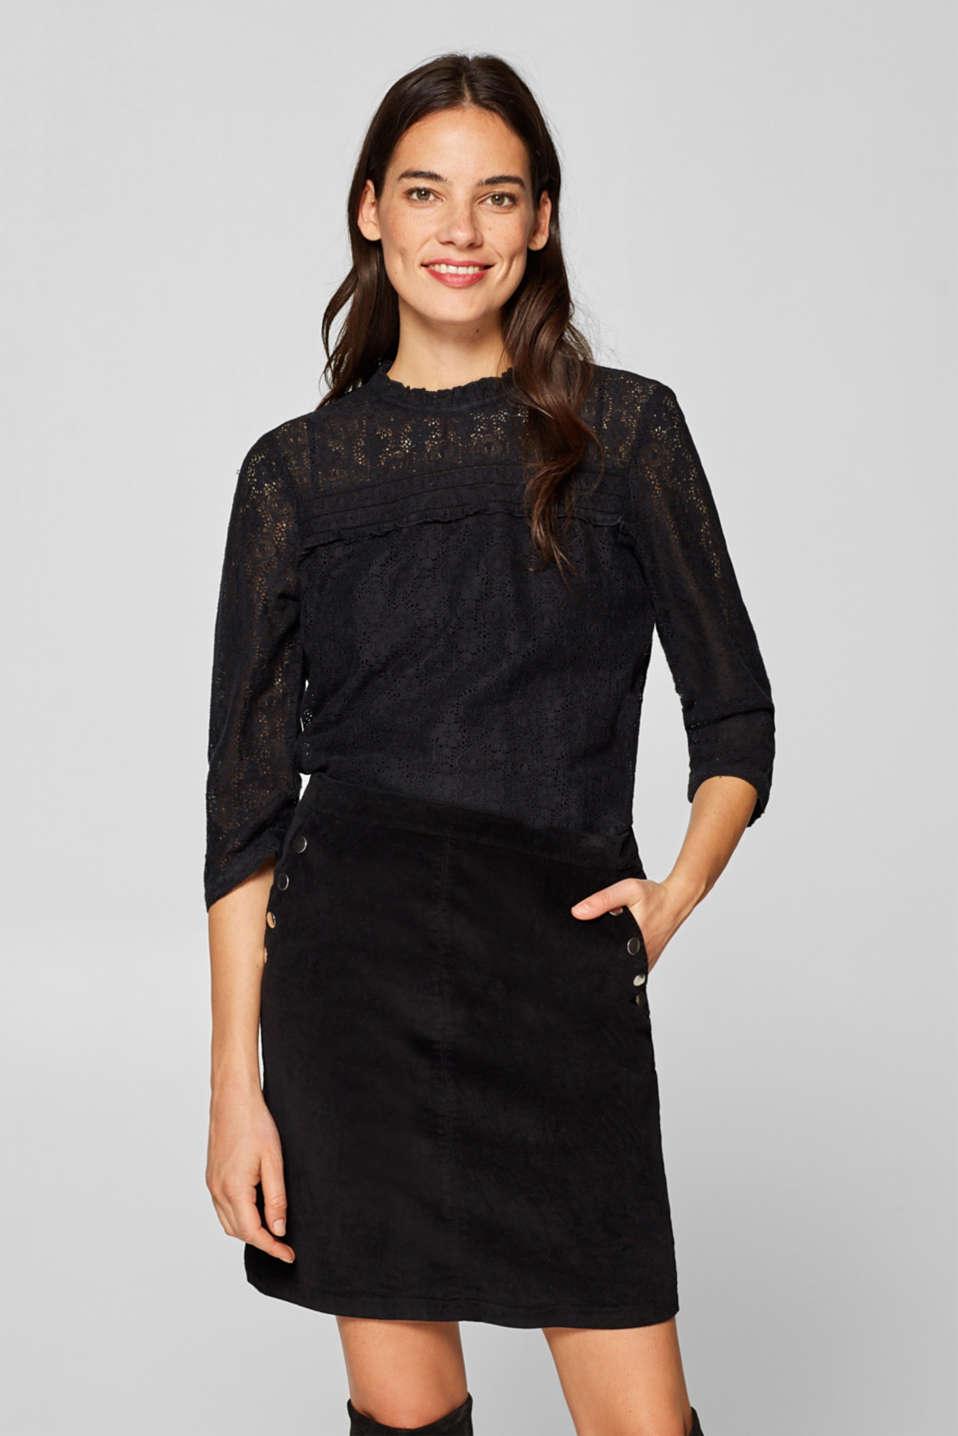 Esprit - Lace blouse with frills and 3/4 sleeves